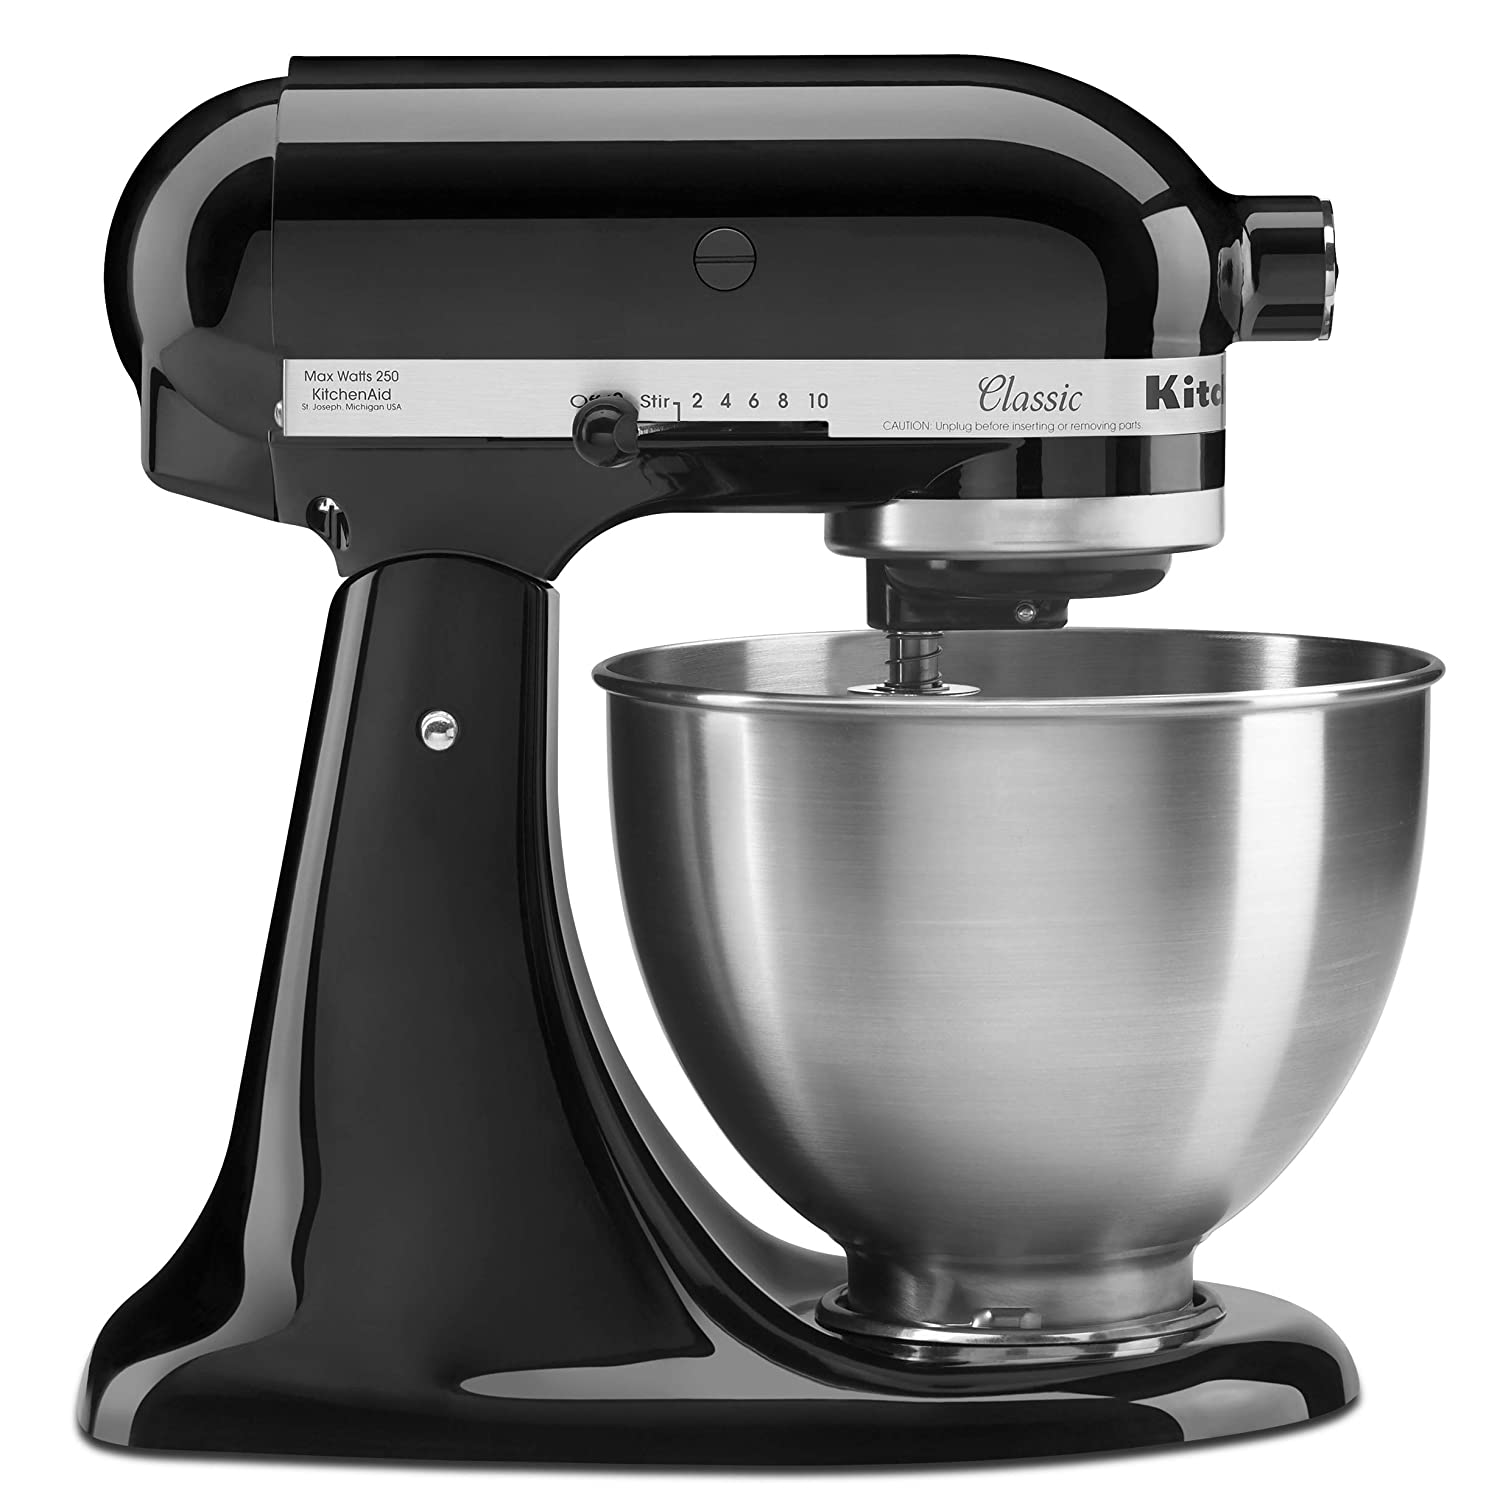 KitchenAid Classic Series 4.5 Quart Tilt-Head Stand Mixer, Onyx Black K45SSOB